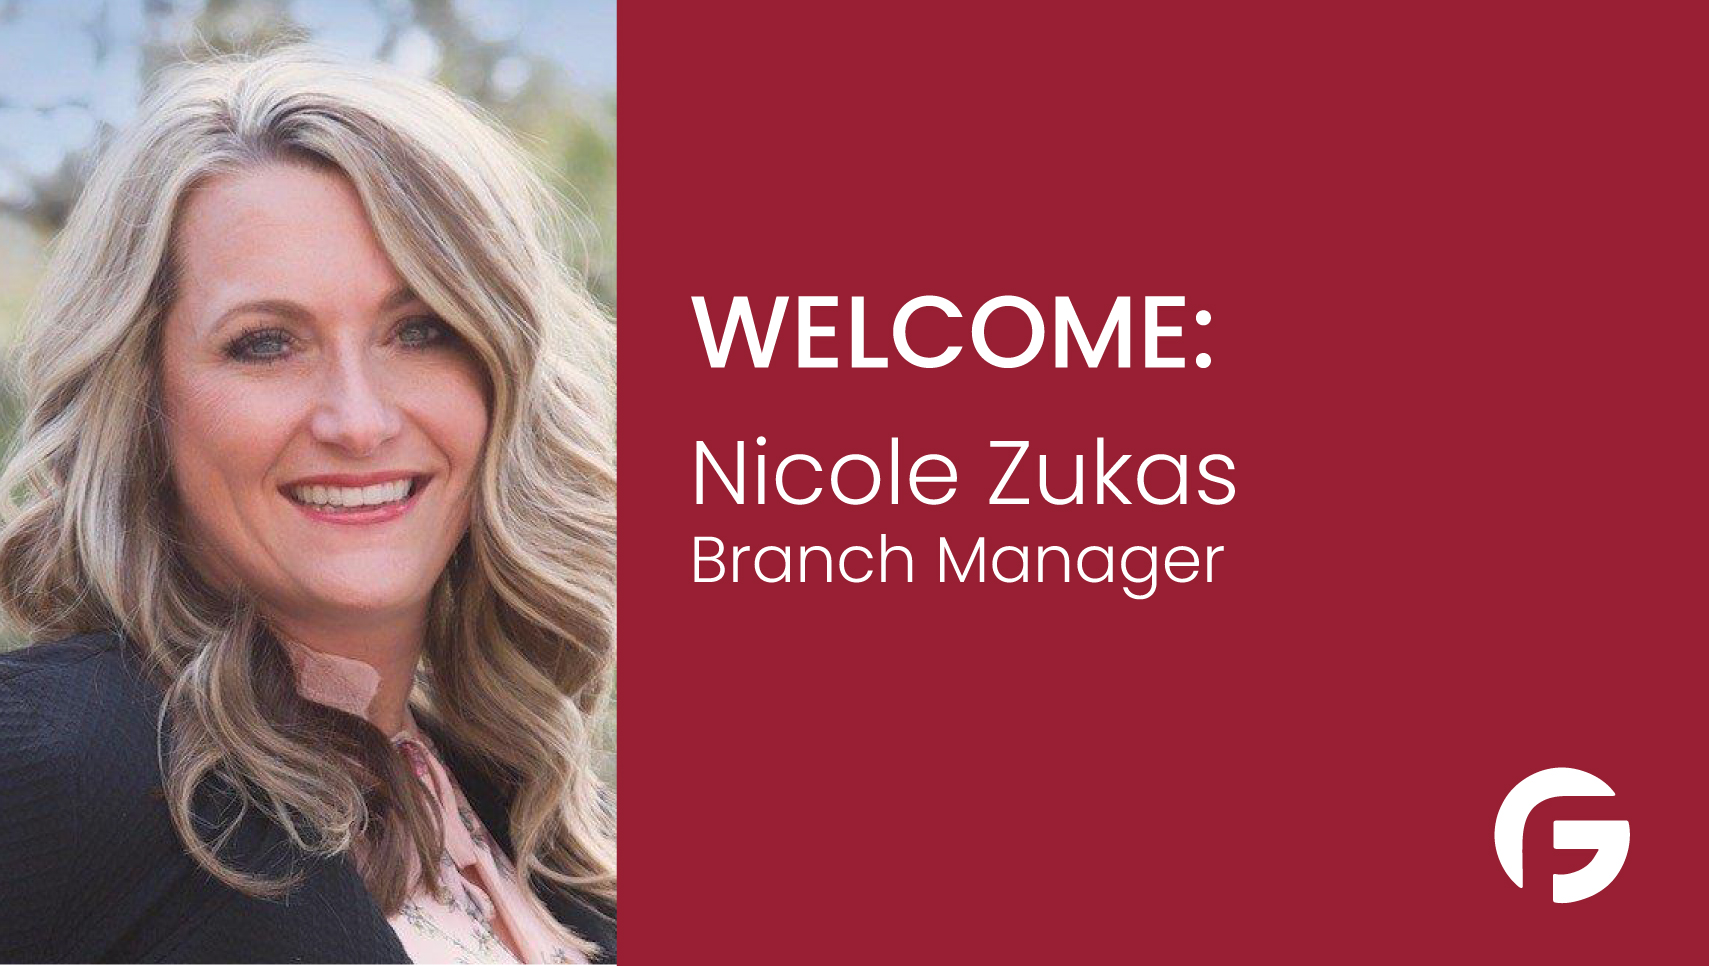 Nicole Zukas, Branch Manager Serving Oregon and Washington